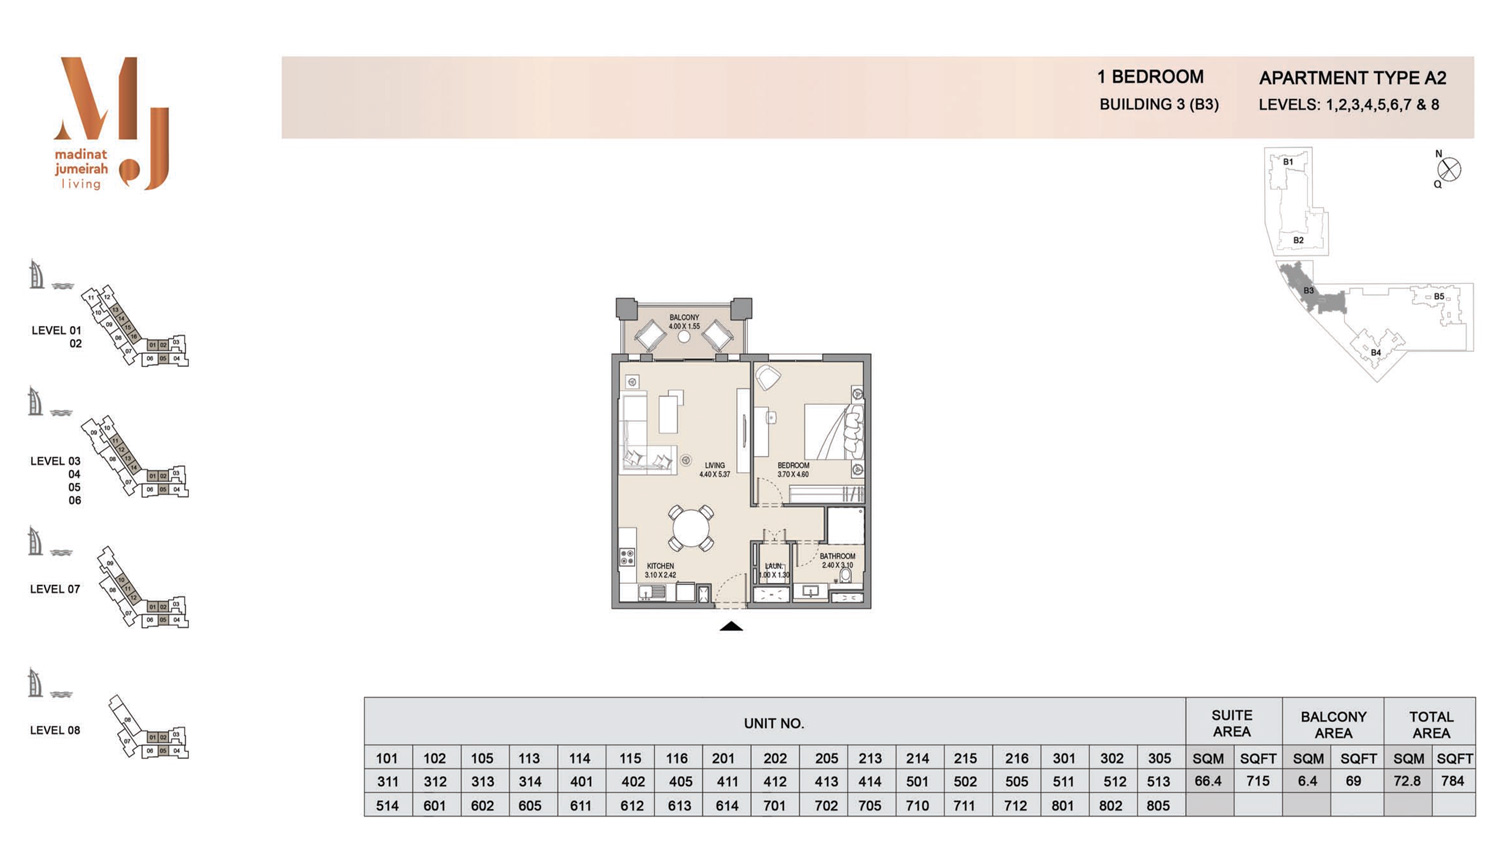 Building3 1 Bedroom, Type A2, Levels 1 to 8, Size 784 sq.ft